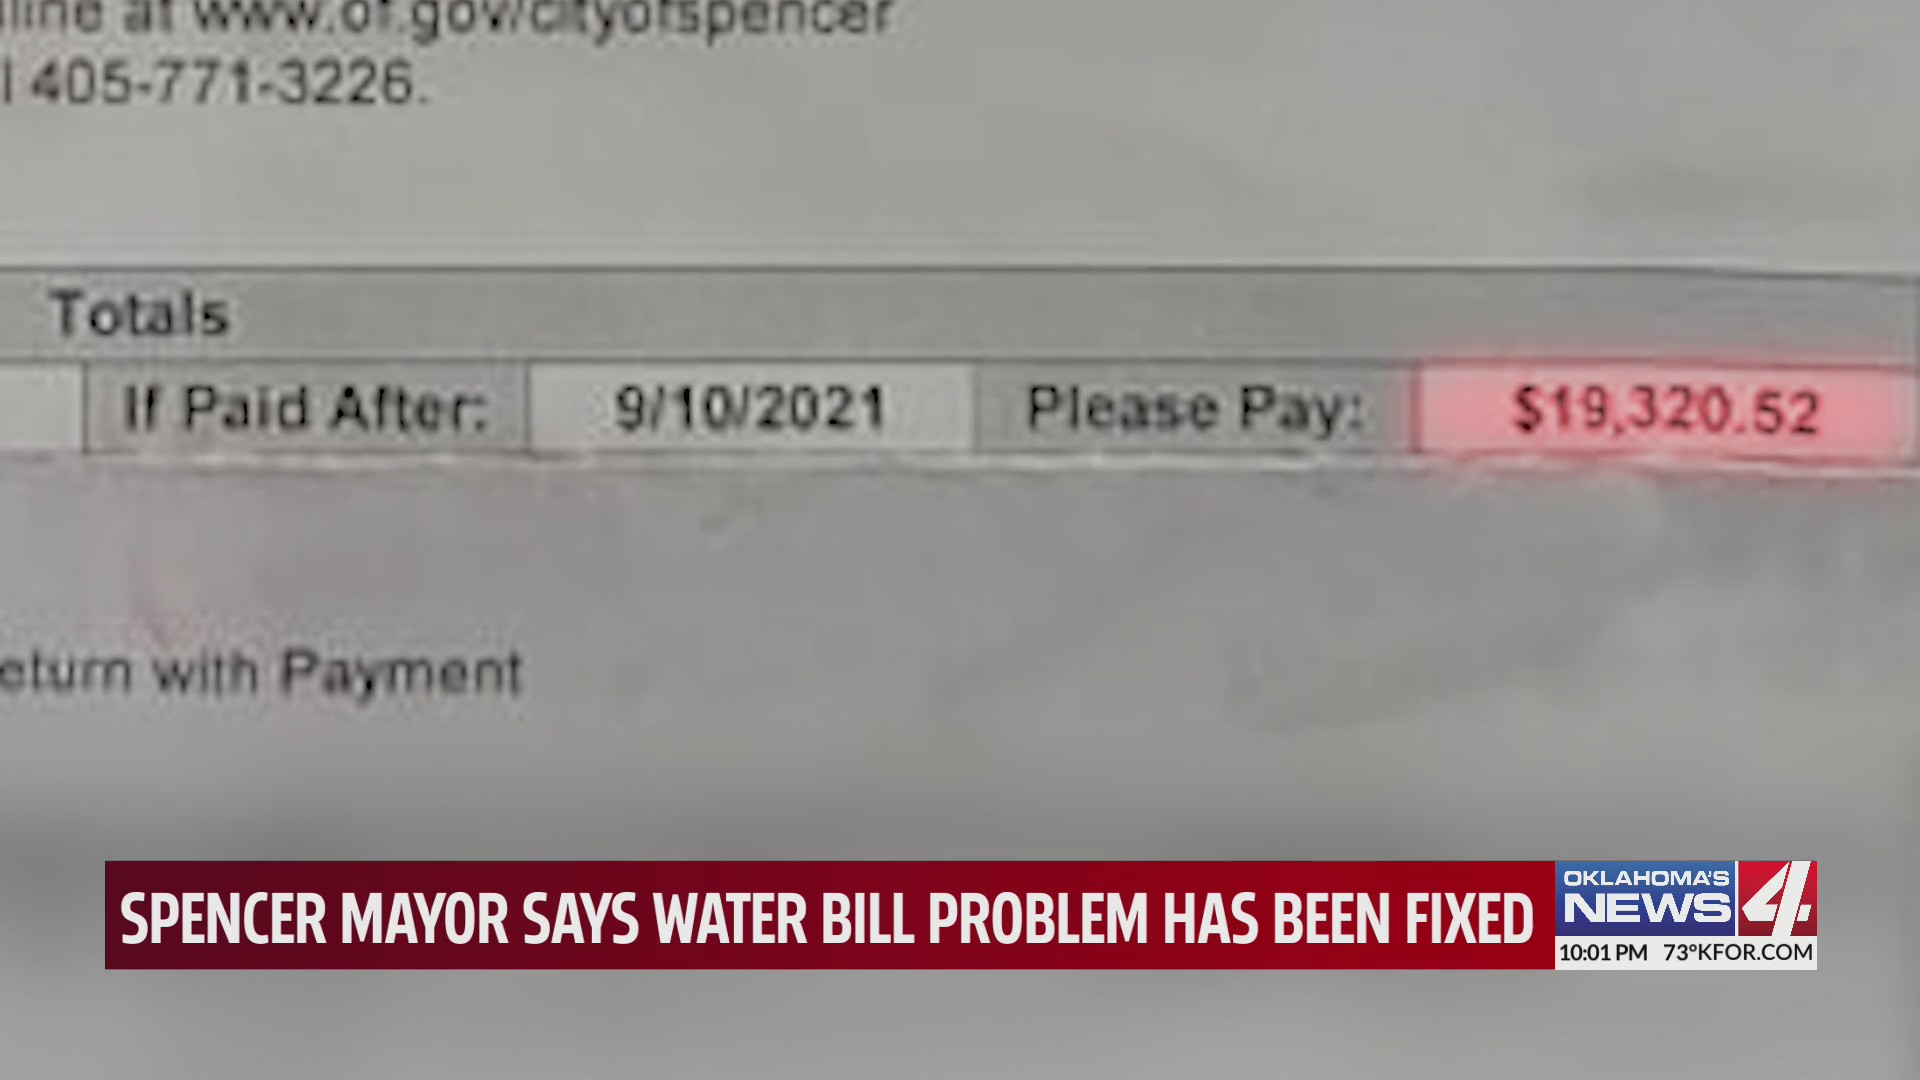 Total for Spencer water bill equaling over $19,000